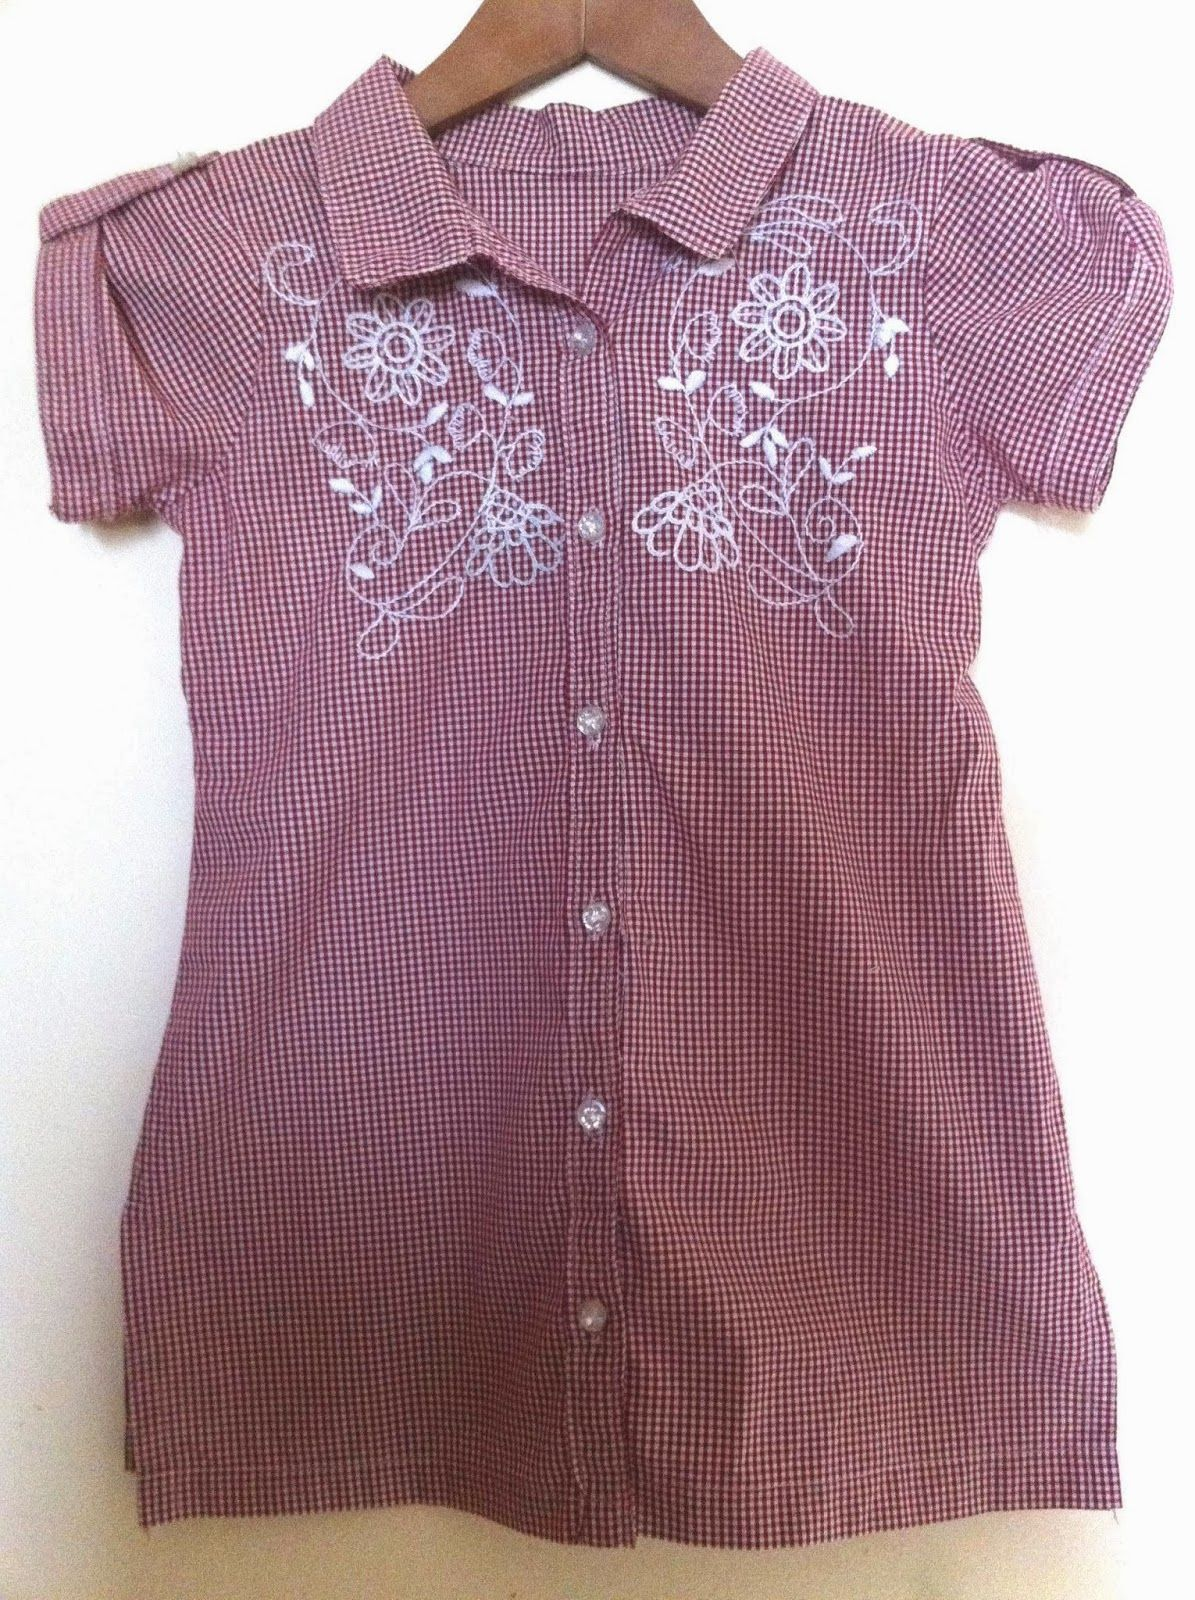 A line shirt with open collar how to draft a pattern for this a line shirt with open collar how to draft a pattern for this shirt sew simple dress jeuxipadfo Images